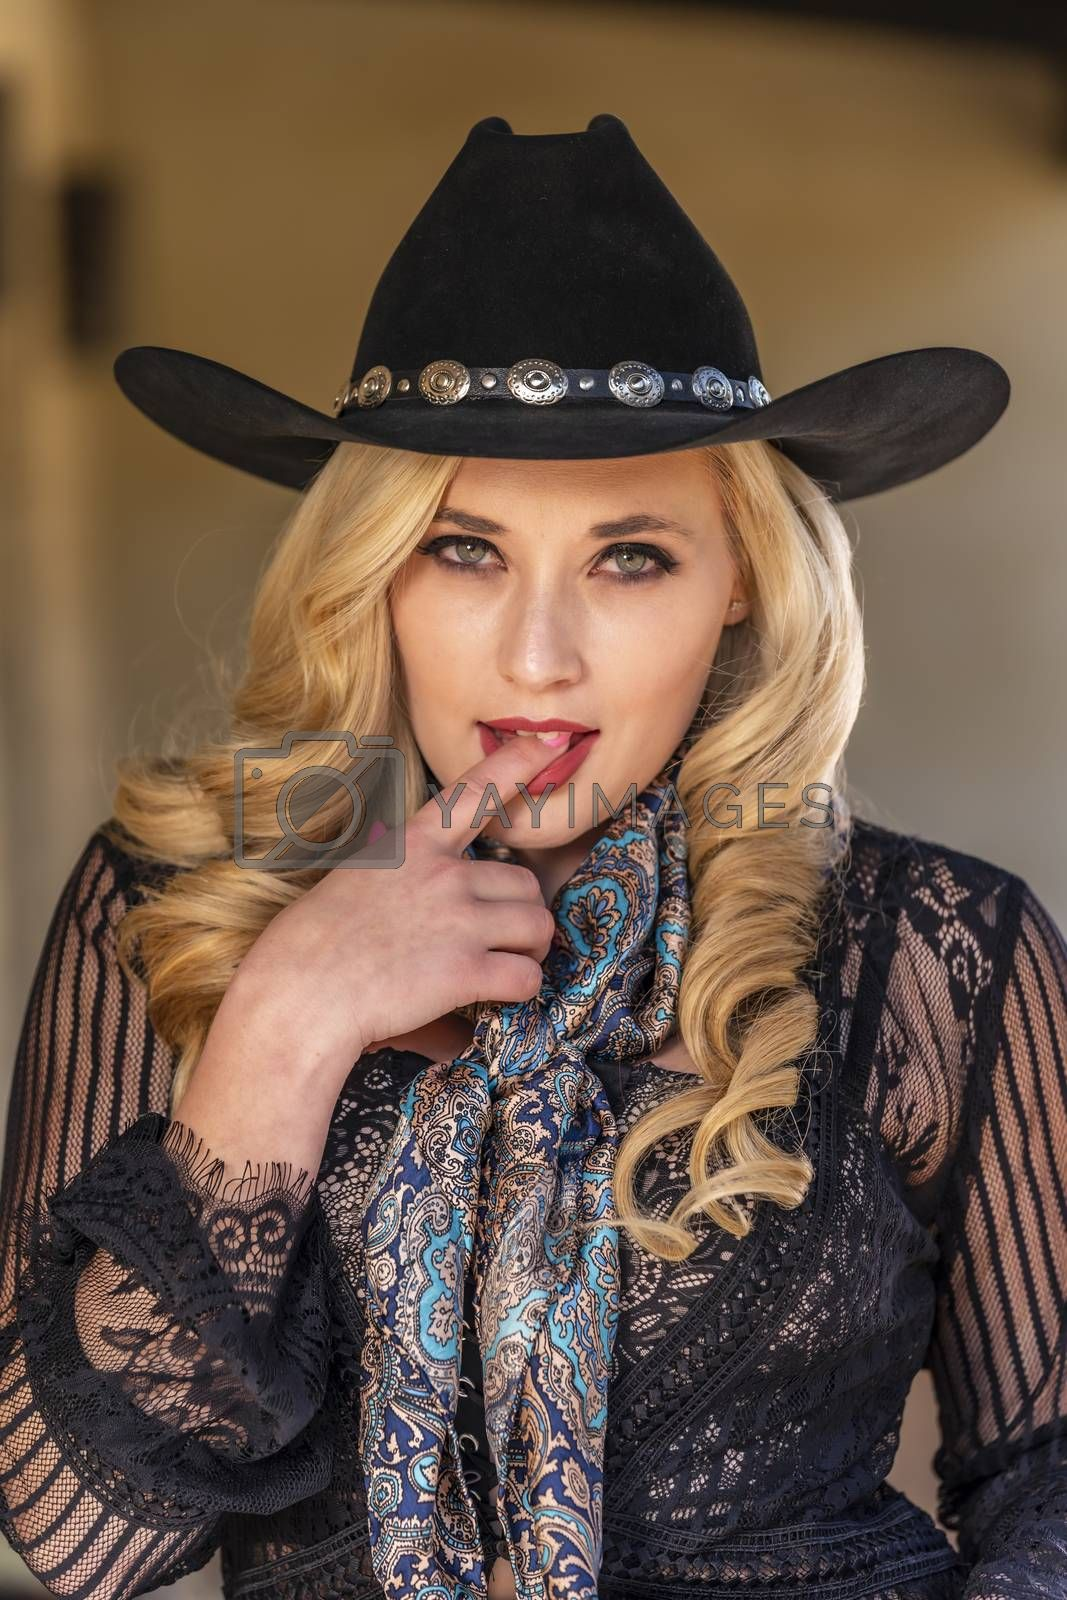 A Lovely Blonde Model Dressed As A Cowgirl Enjoys The American West by actionsports